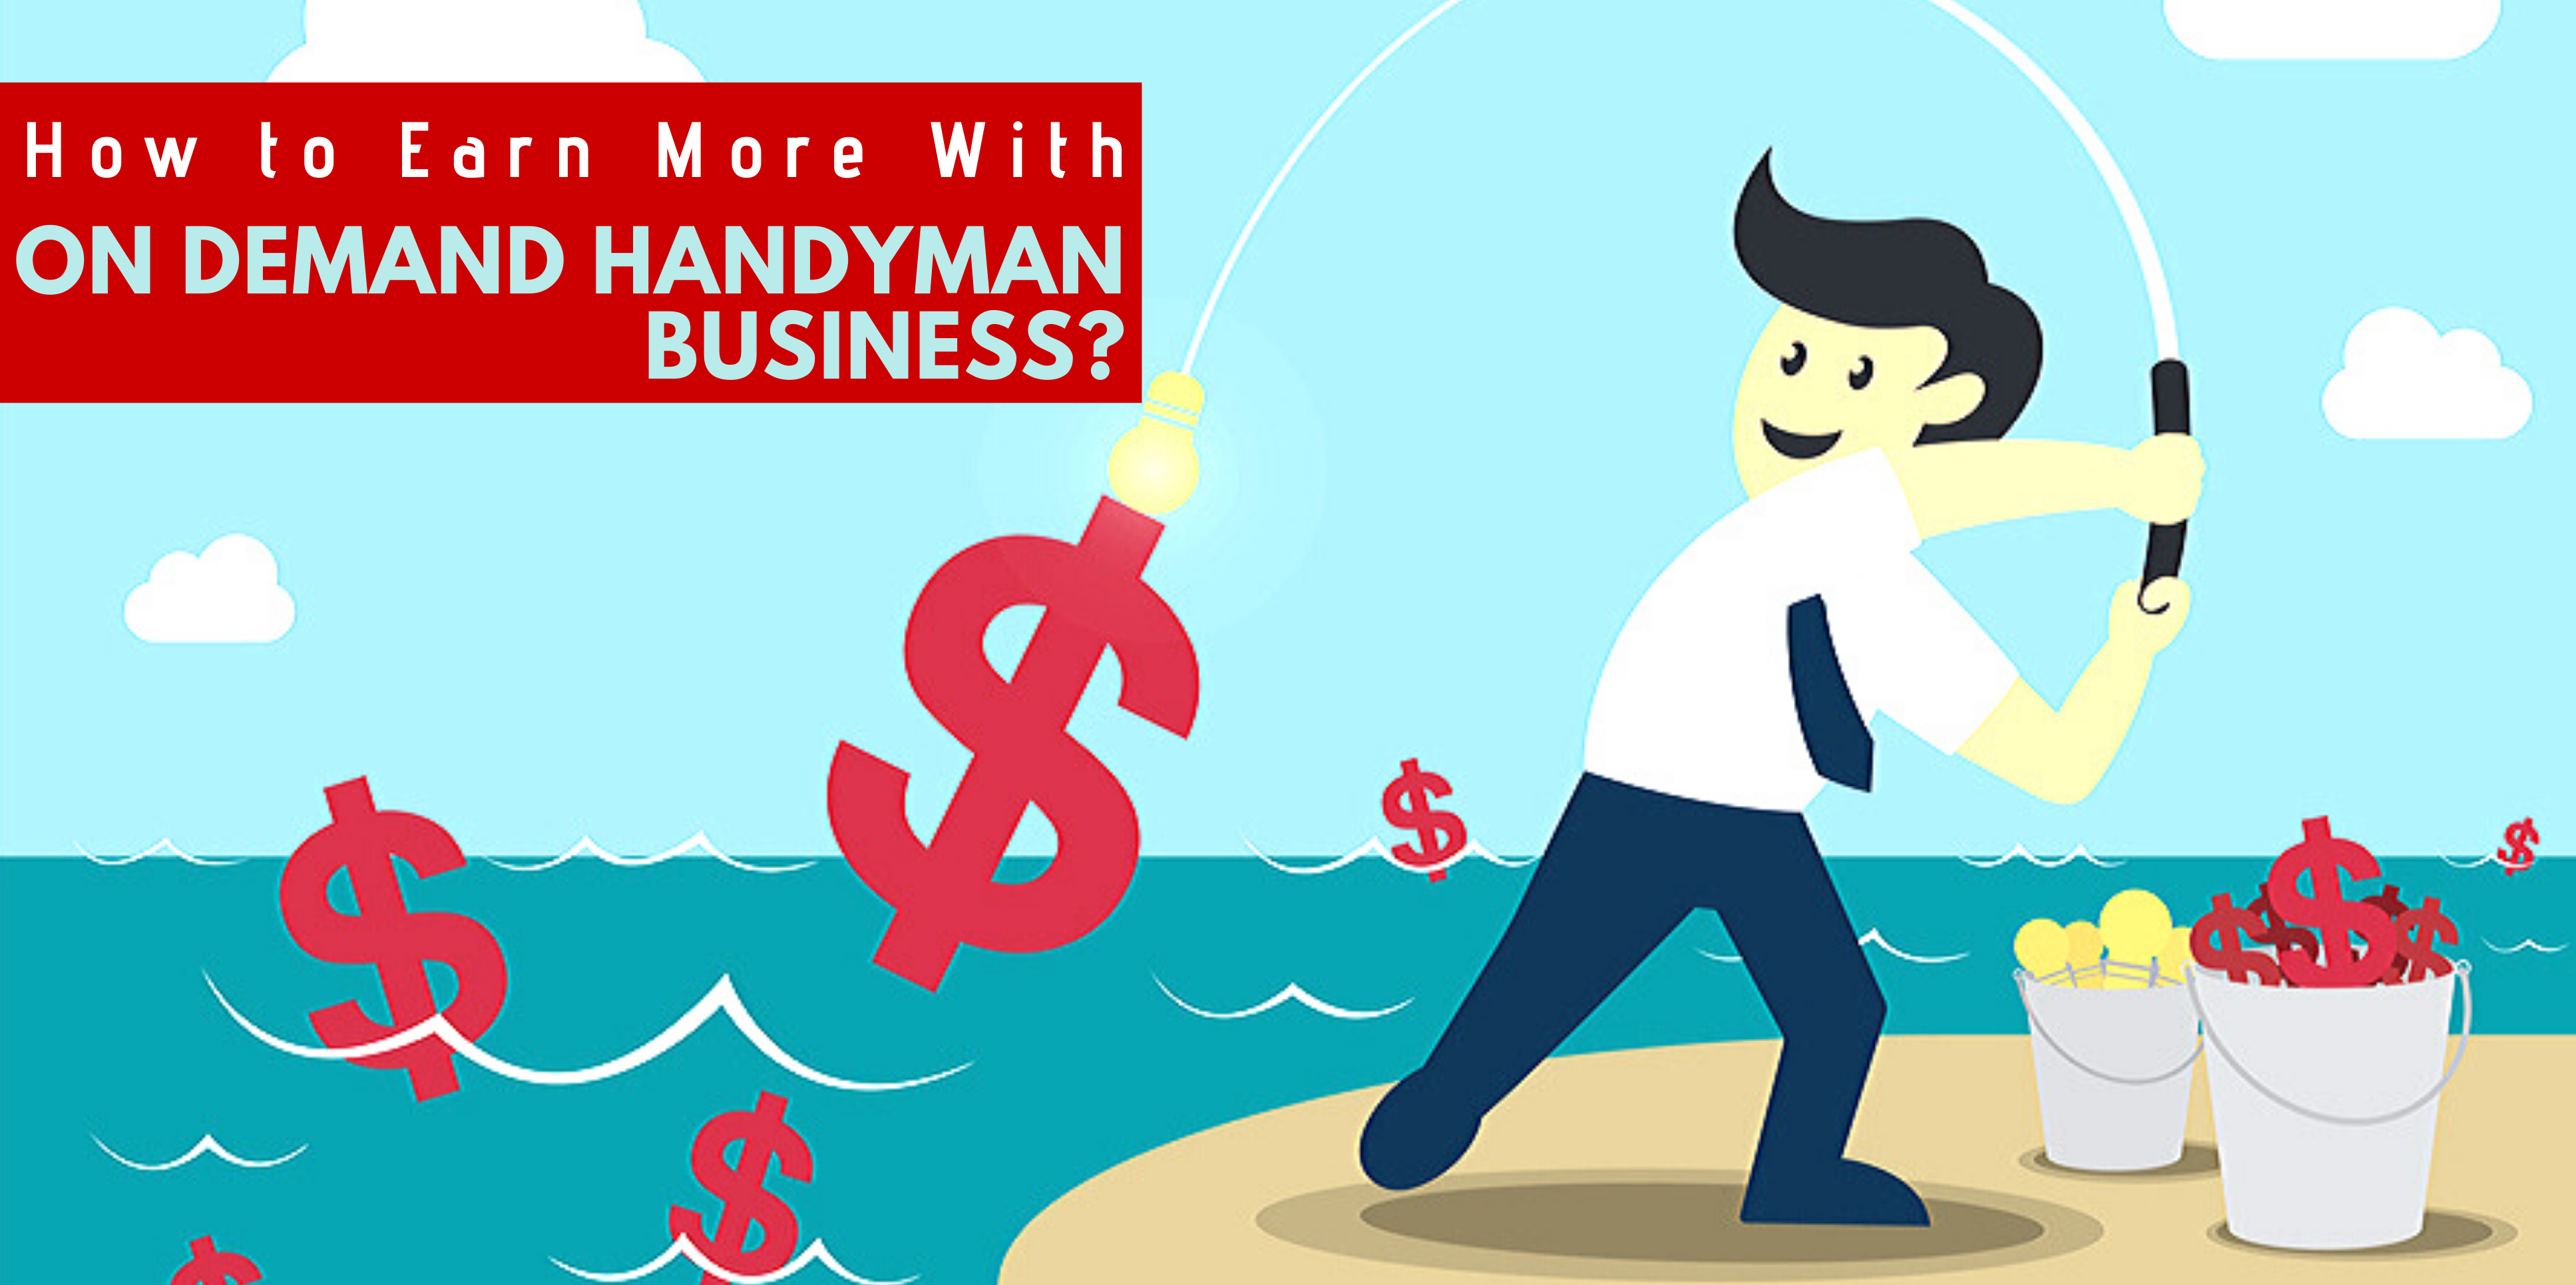 How to Earn More With On Demand Handyman Business?